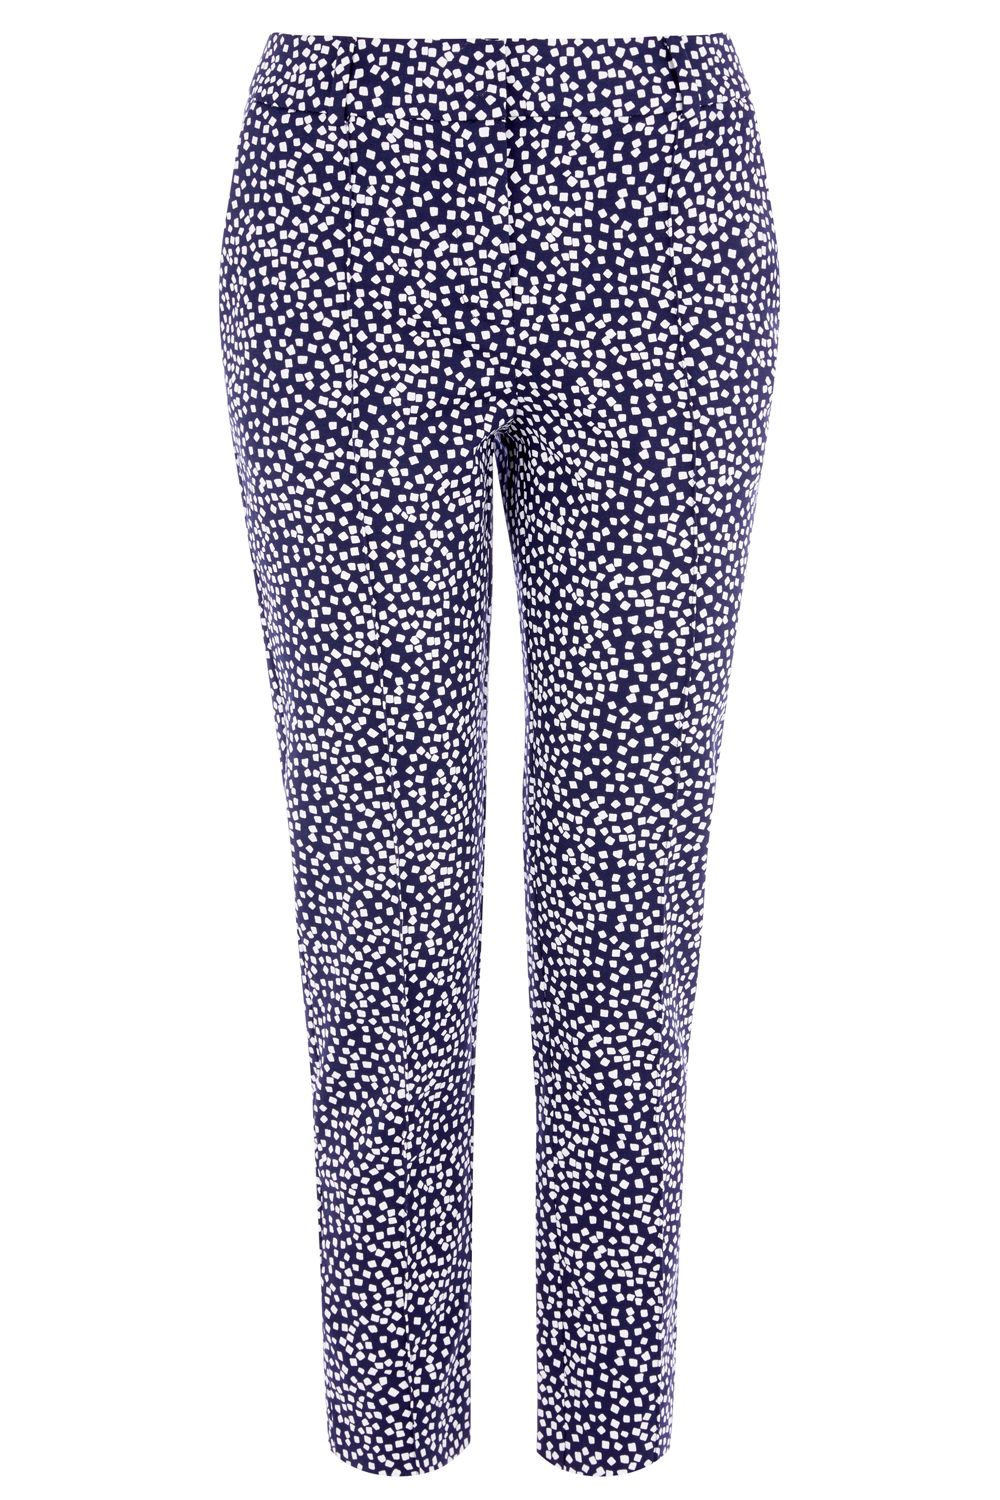 Warehouse Woodblock Trousers, Multi-Coloured